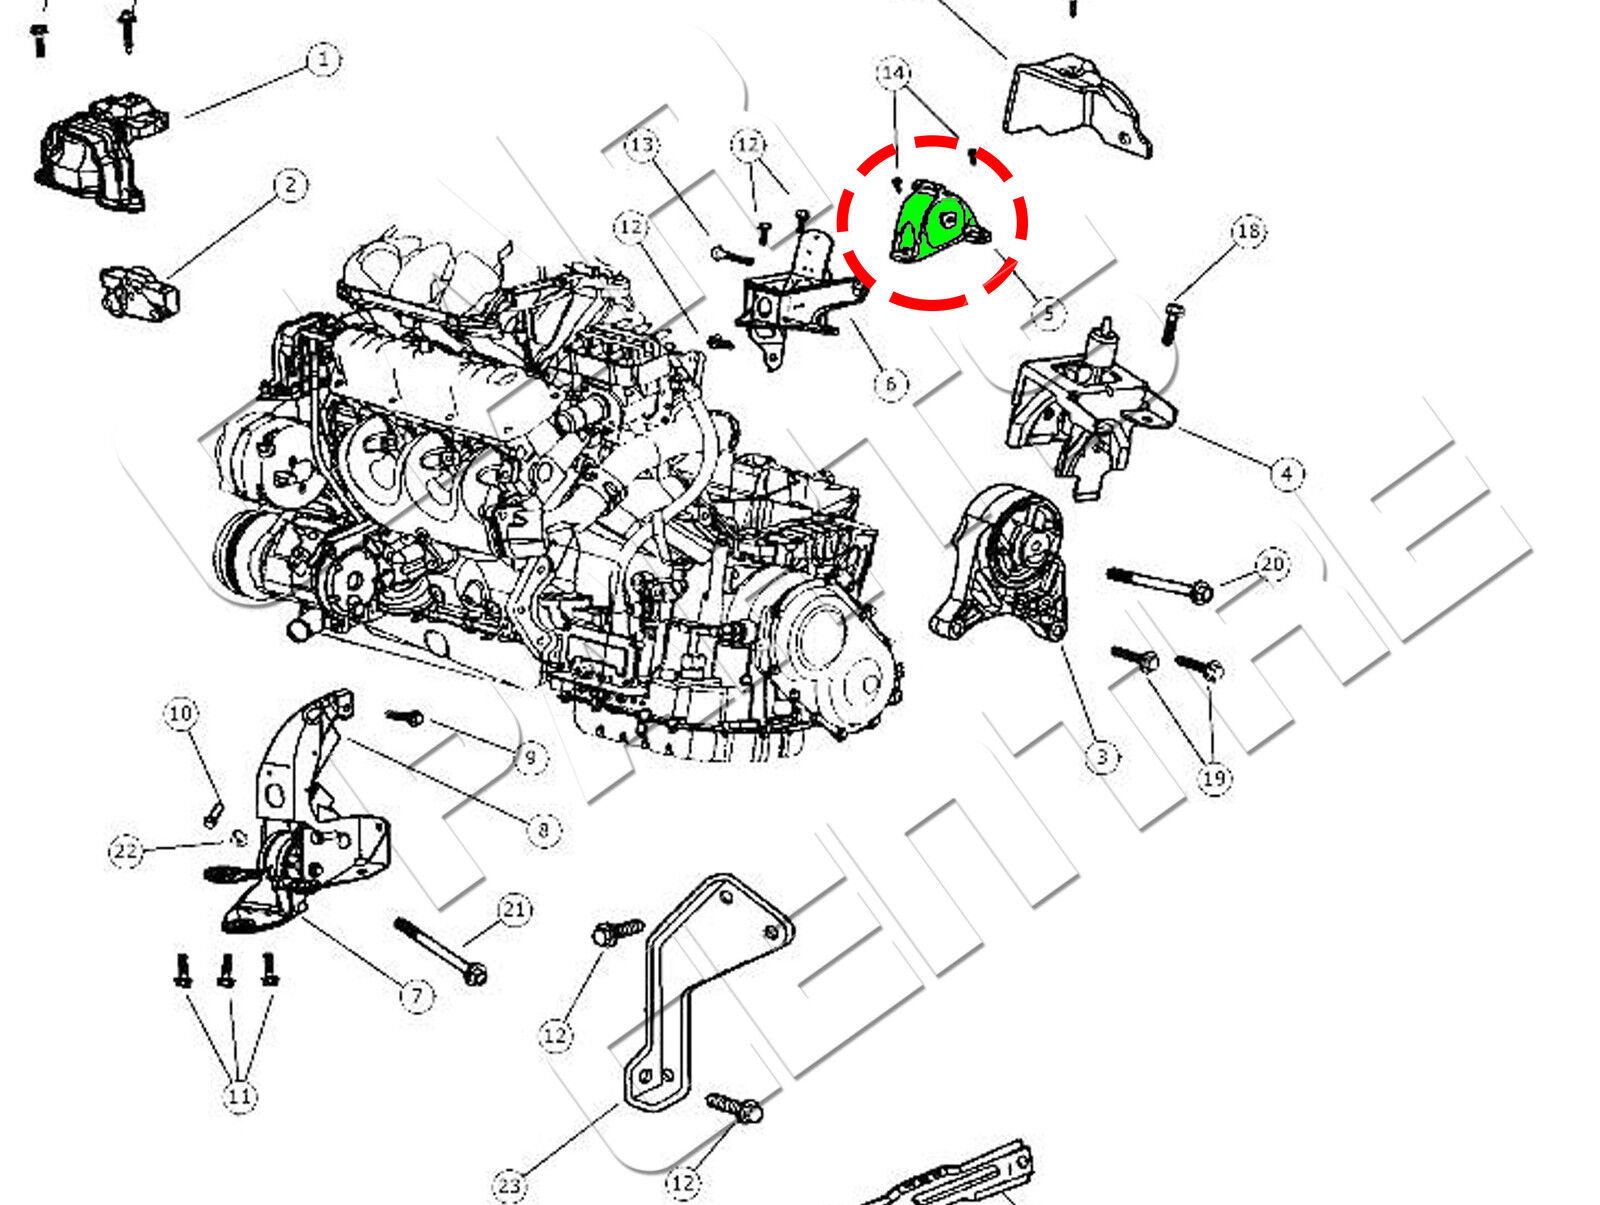 Chrysler 3 8 Engine Coolant System Diagram Wiring Diagrams For Third Level Rh 20 11 13 Jacobwinterstein Com Radiator